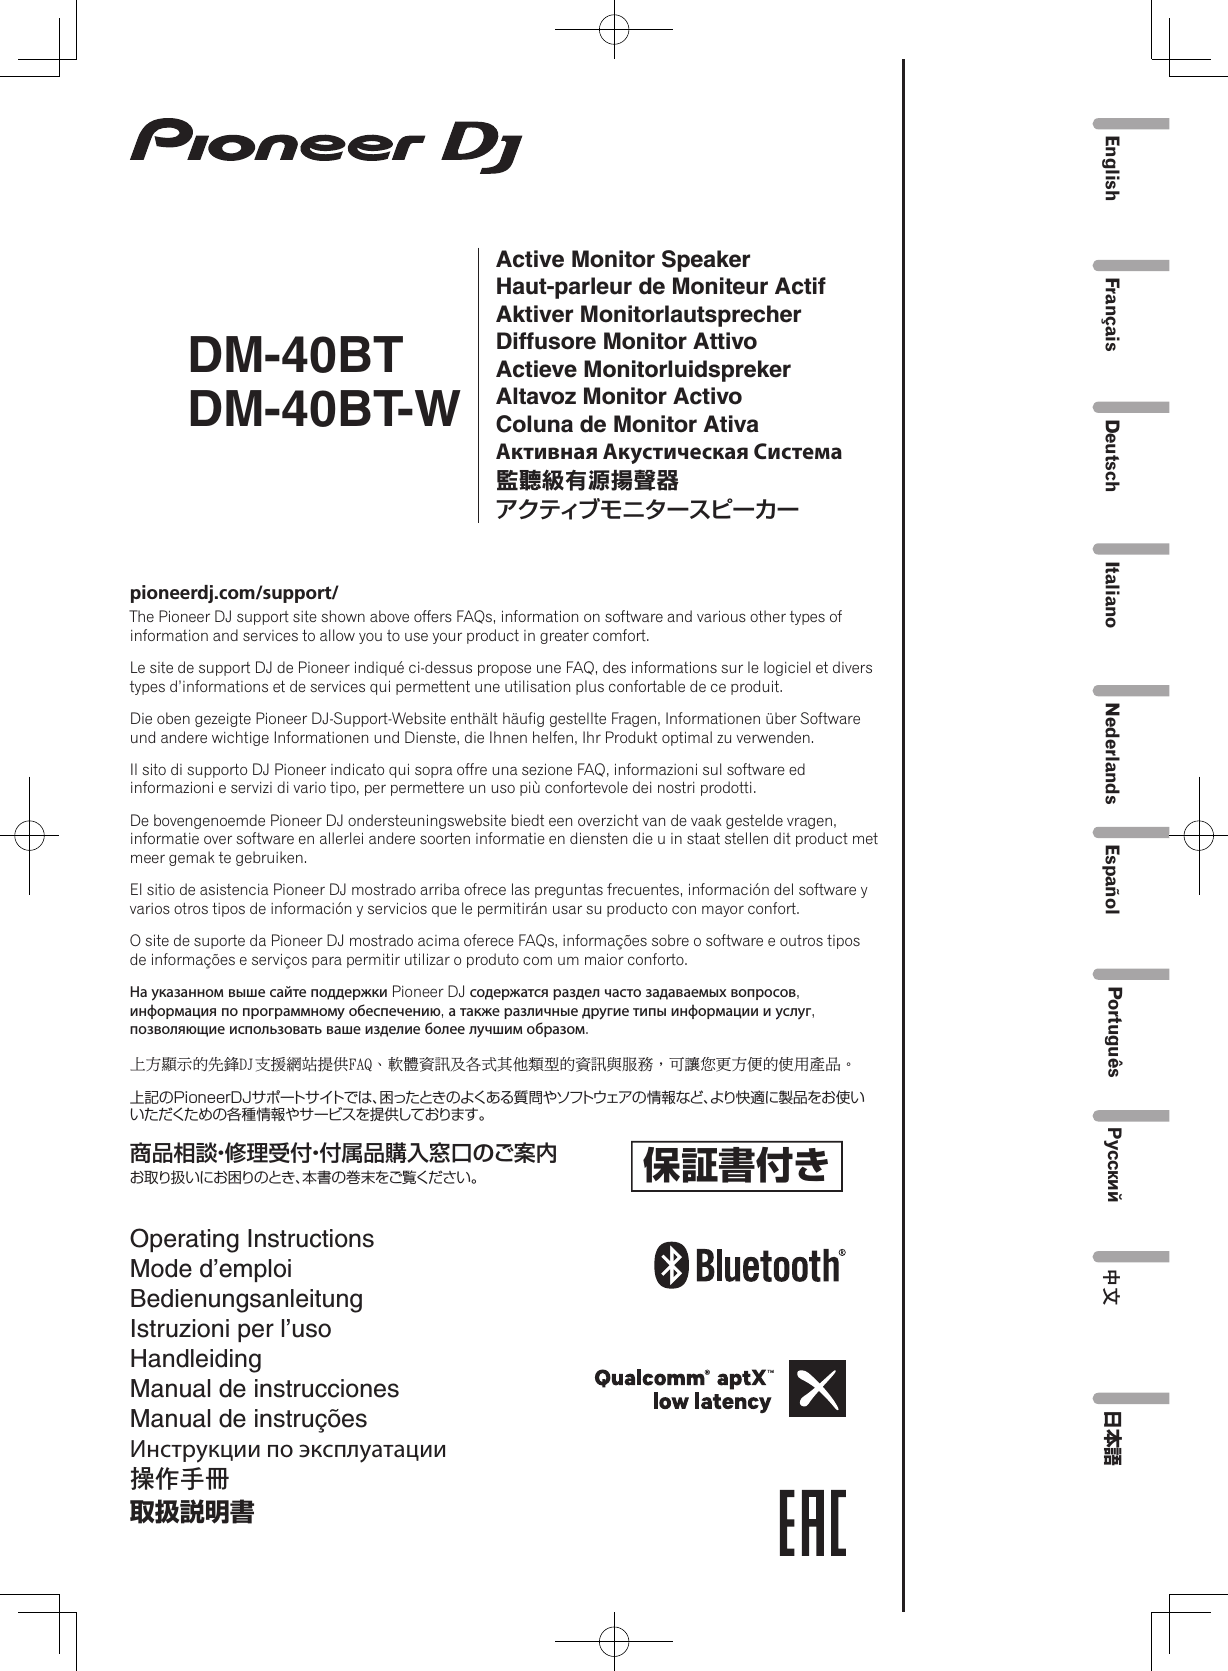 pioneer dj dm40bt active monitor speaker user manual part 1 rh usermanual wiki pioneer radio user guide pioneer cdj 2000 user guide